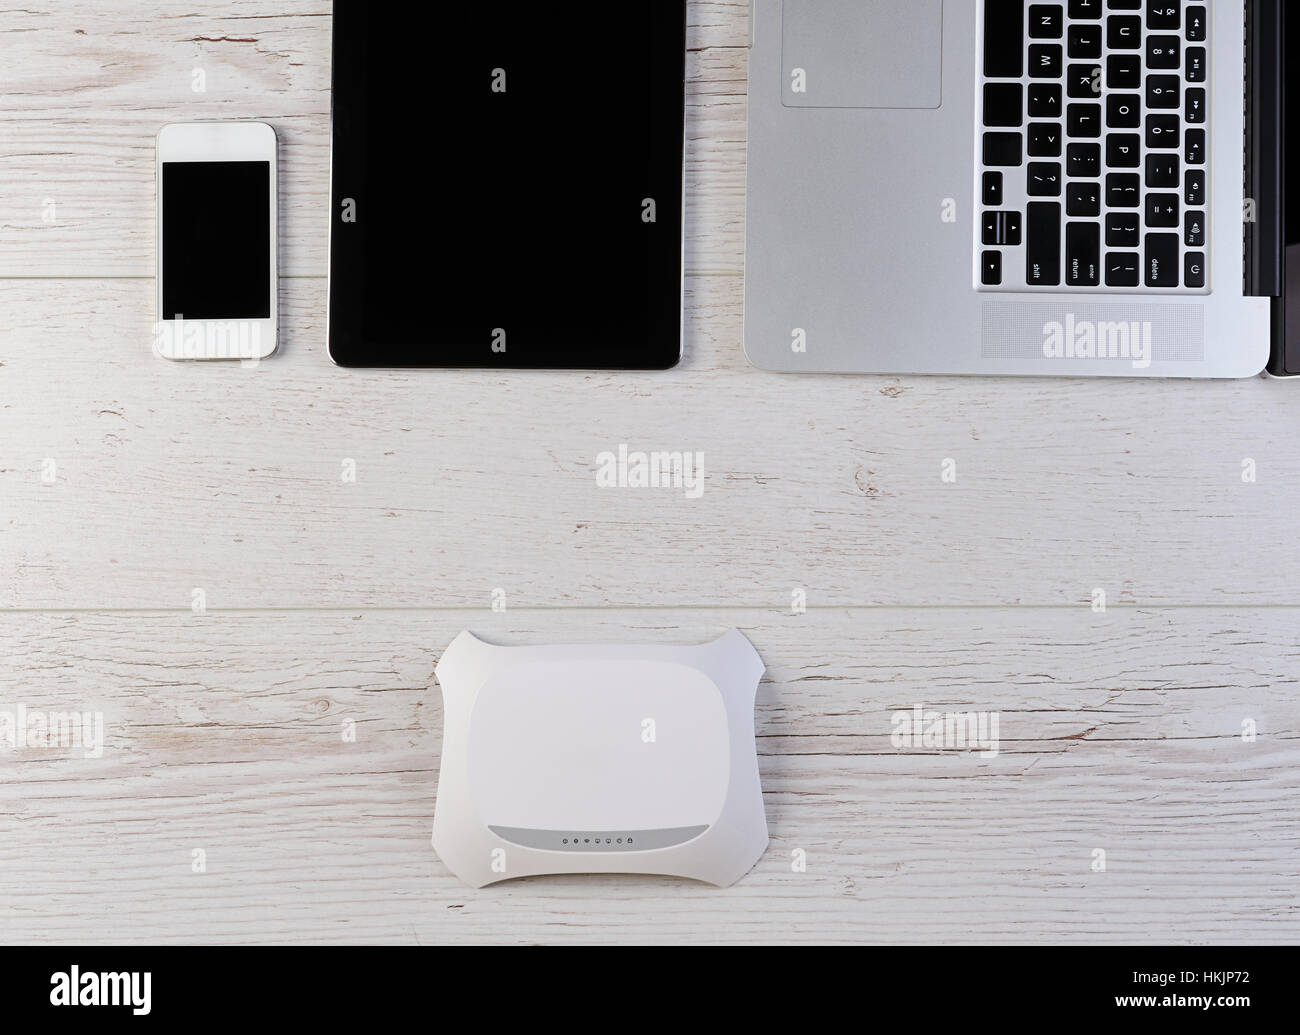 Wifi internet router modem connect laptop tablet and smartphone on wifi internet router modem connect laptop tablet and smartphone on wood greentooth Images